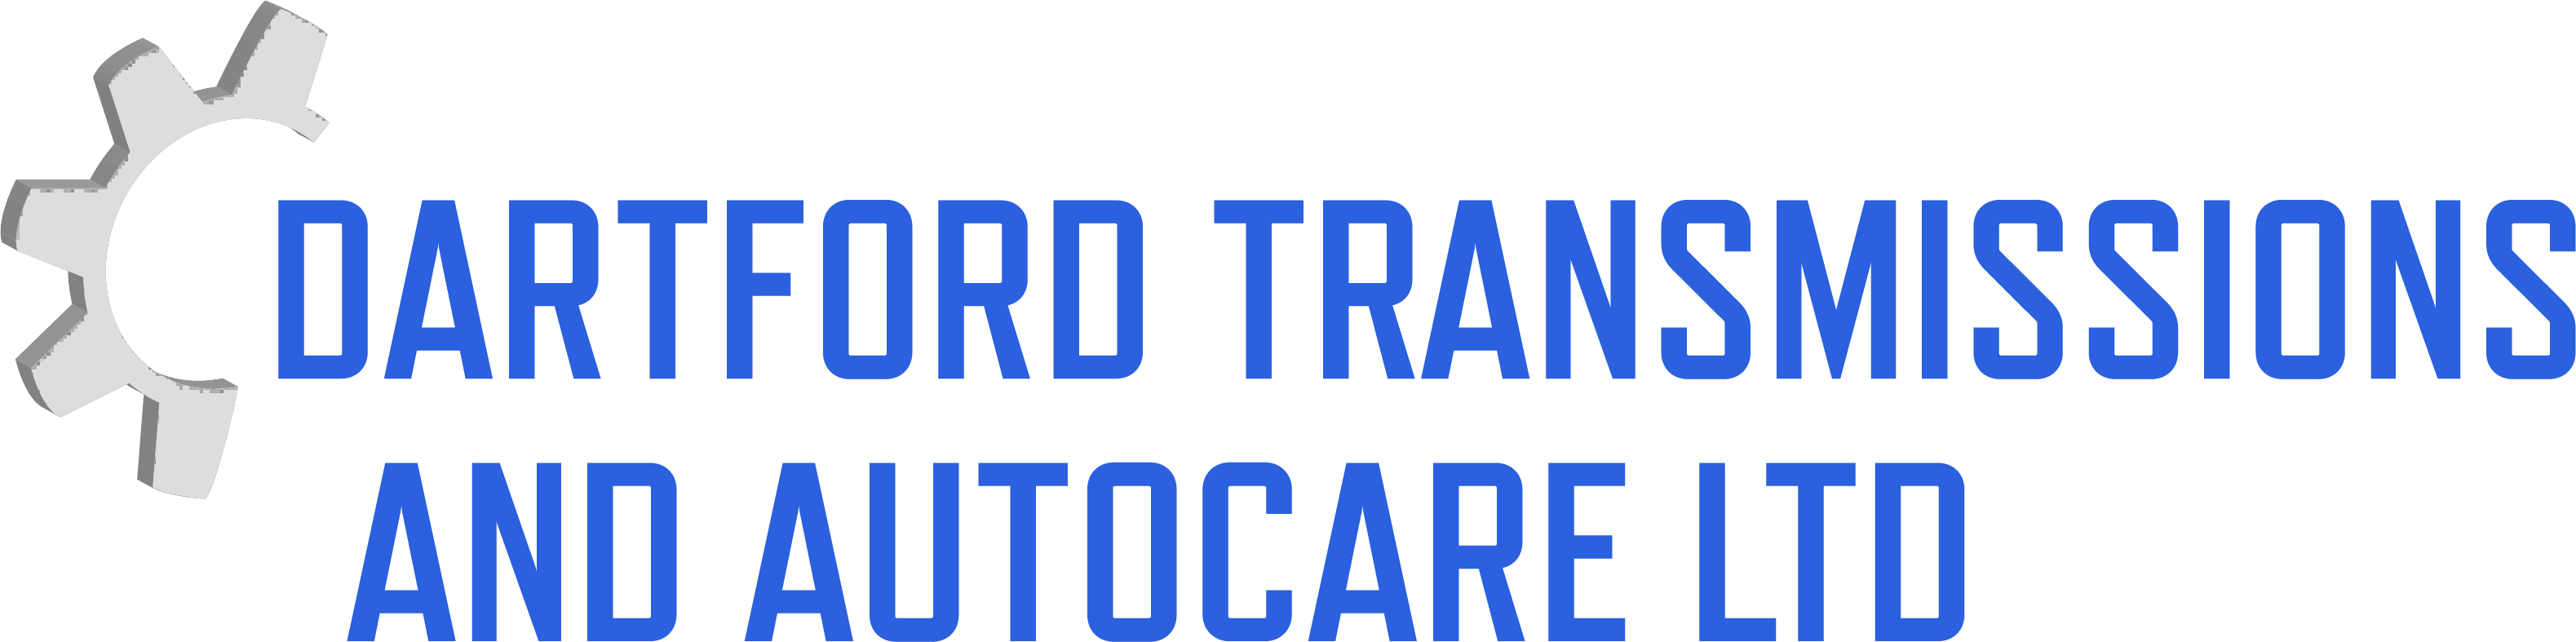 Dartford Transmissions & Autocare Ltd